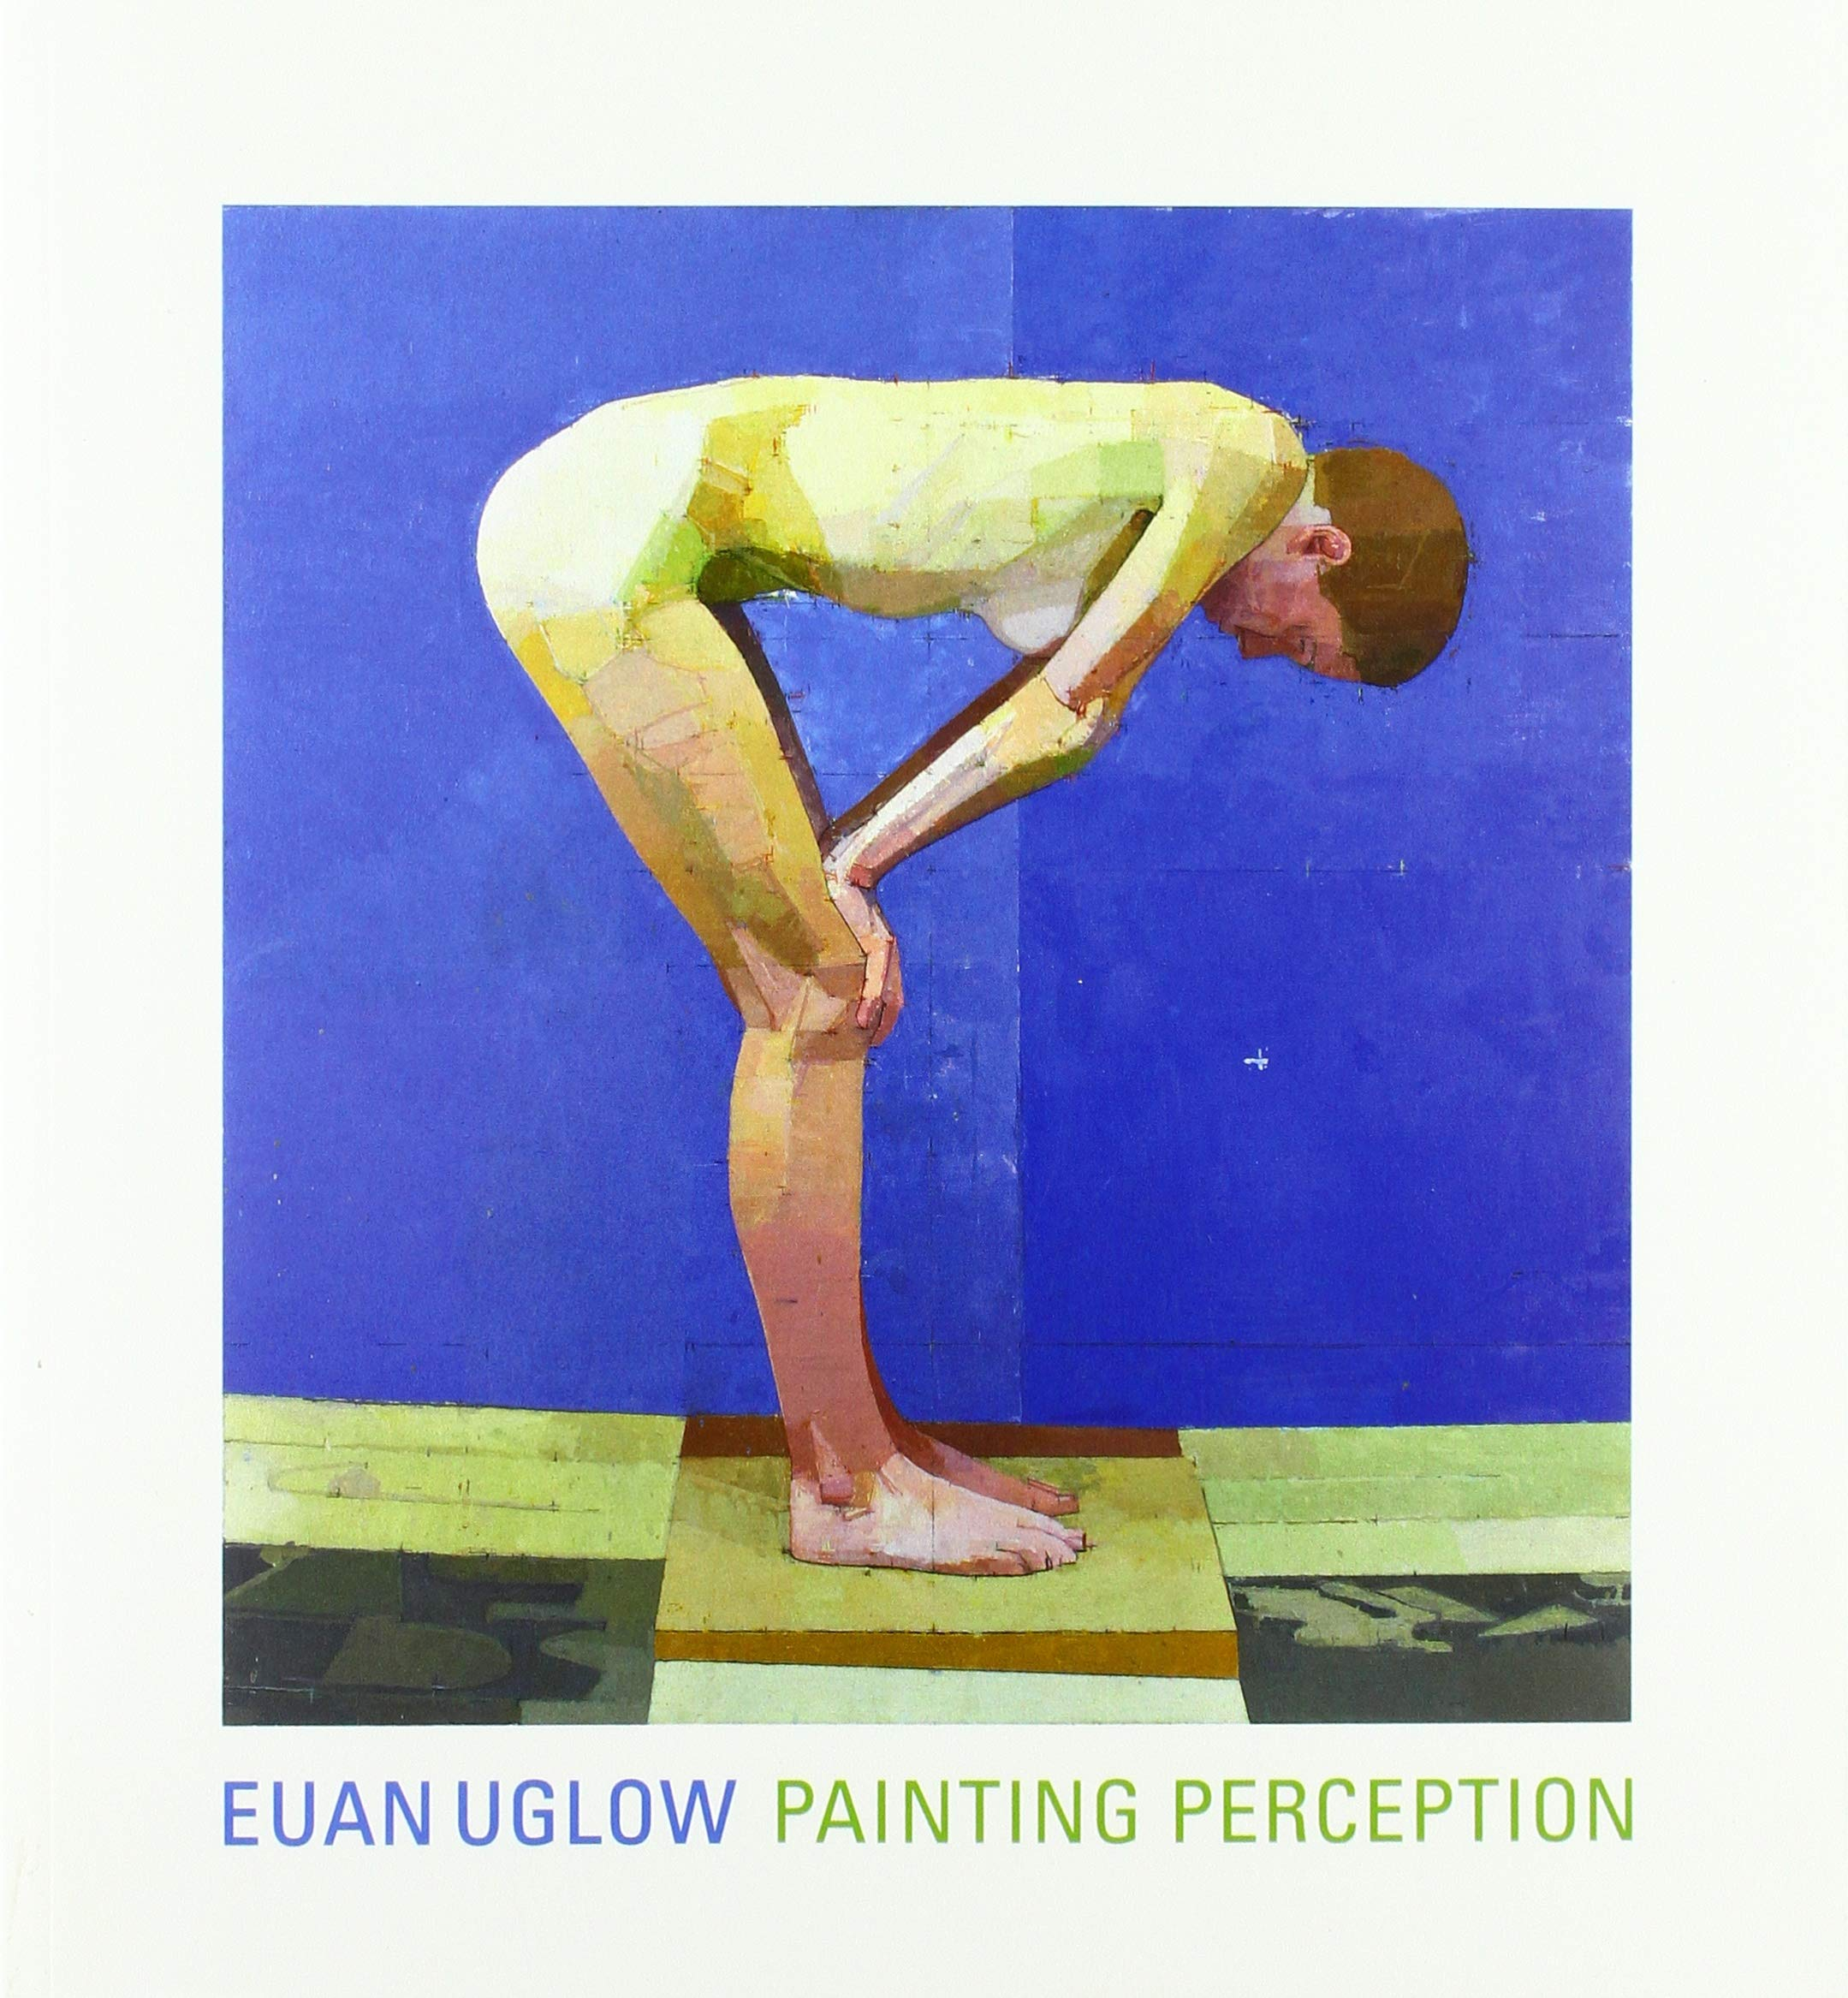 Euan Uglow: Painting Perception: Amazon.es: Paul van den ...